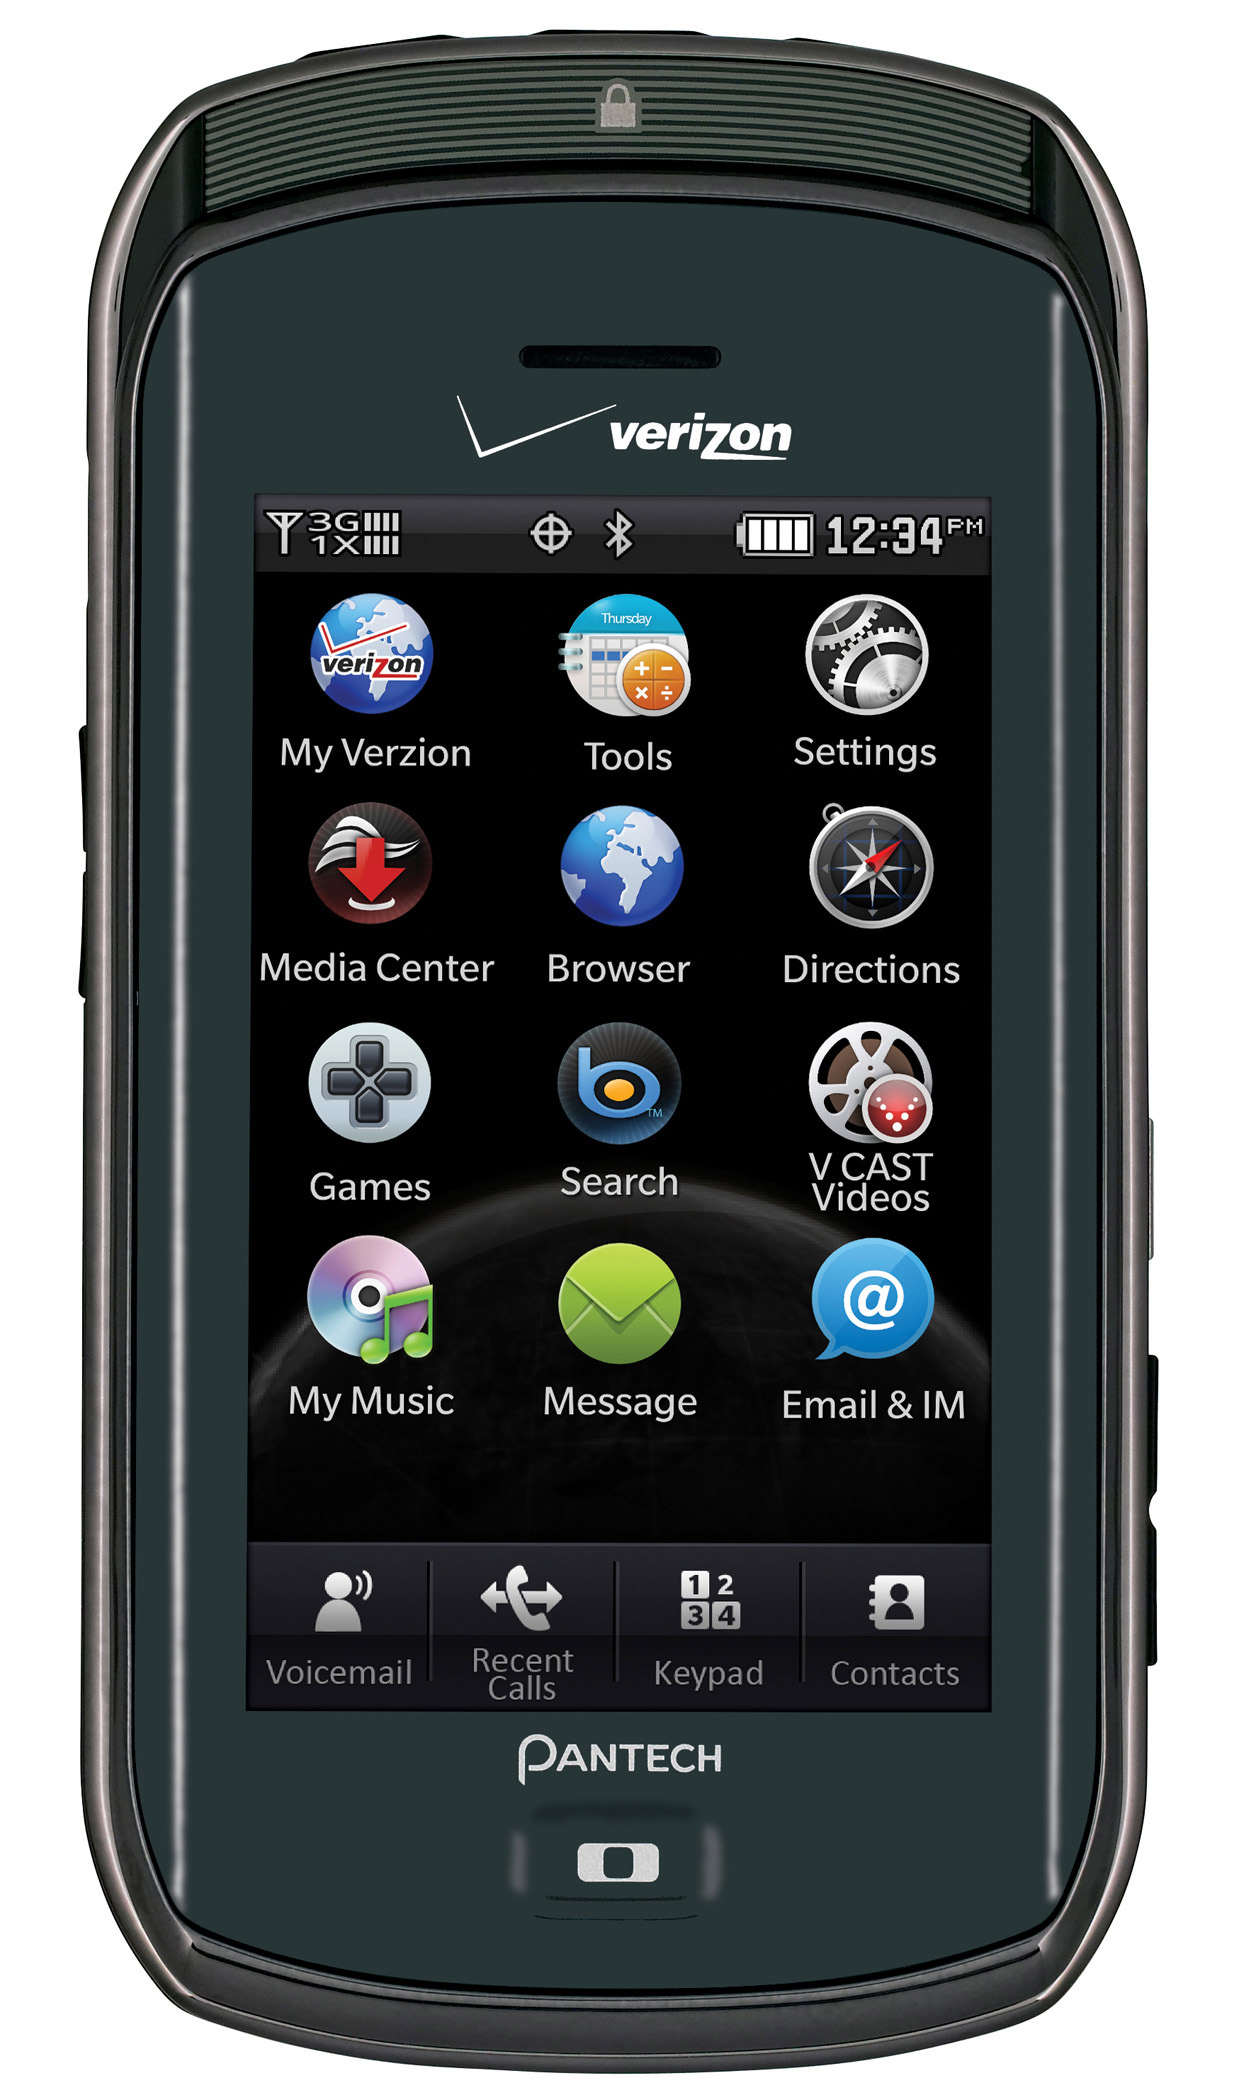 Pantech Crux arrives at Verizon Wireless   Dialed In   CNET Blogs